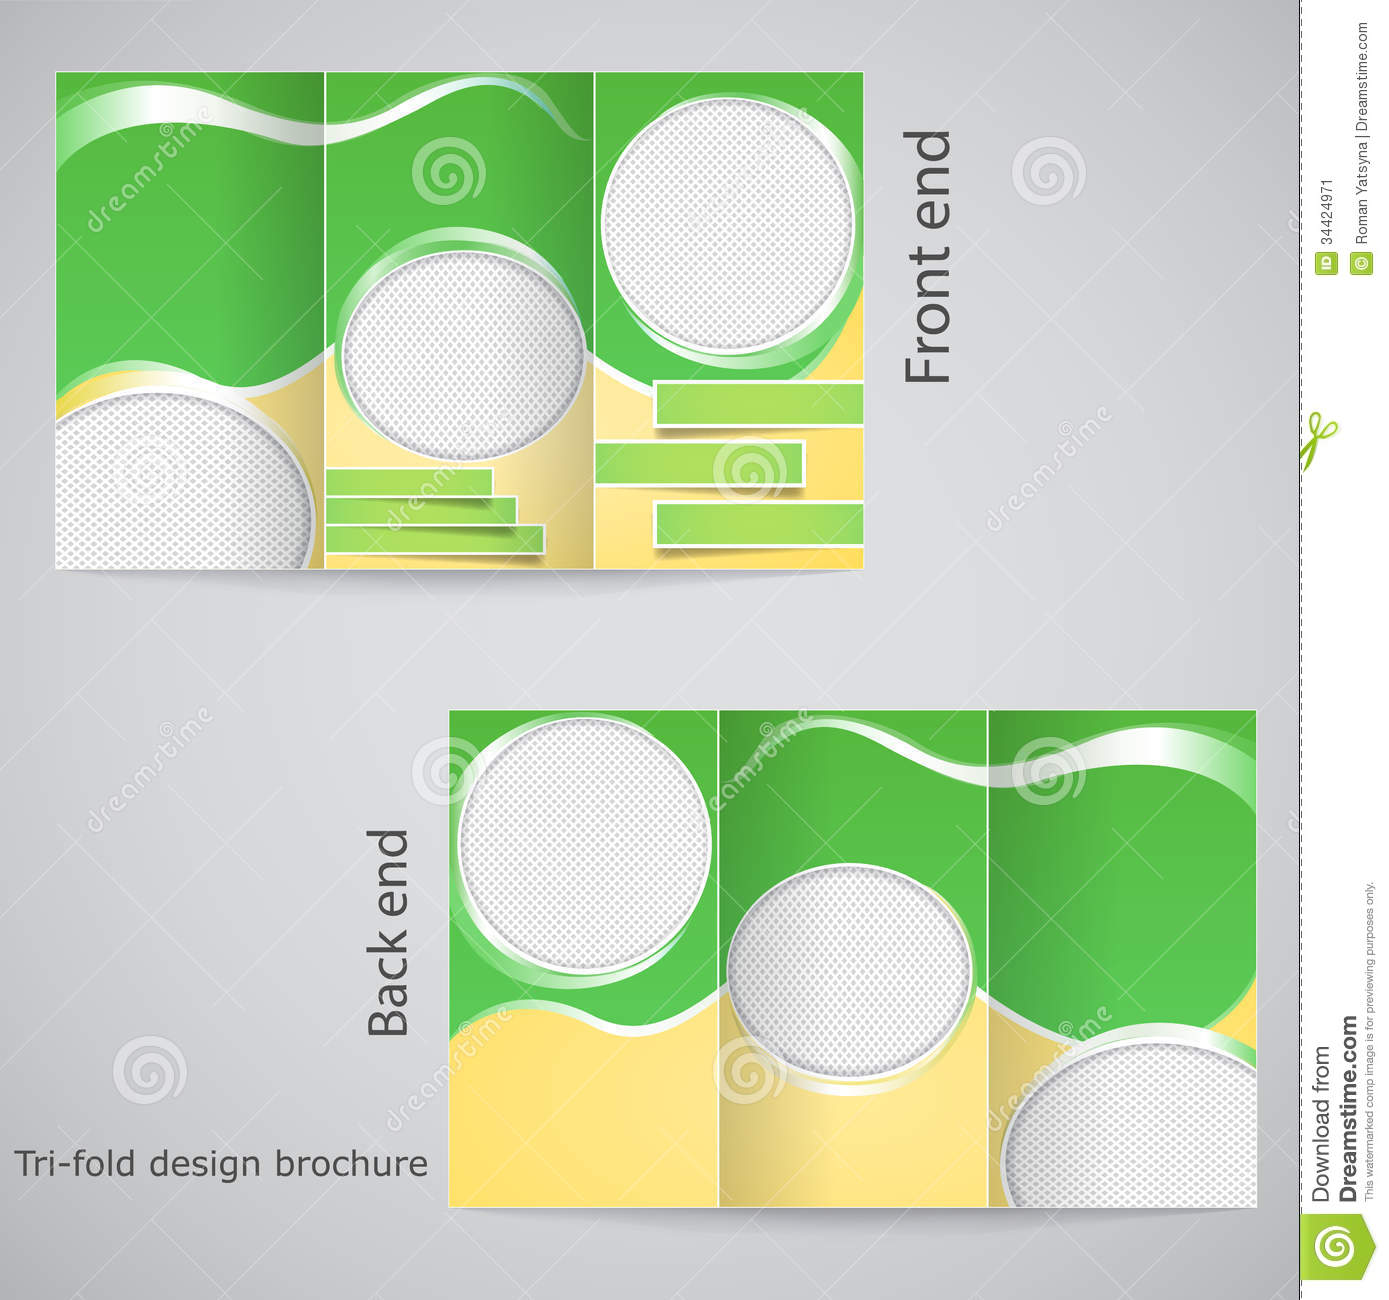 Tri fold brochure design stock vector illustration of for Tri fold brochure design templates